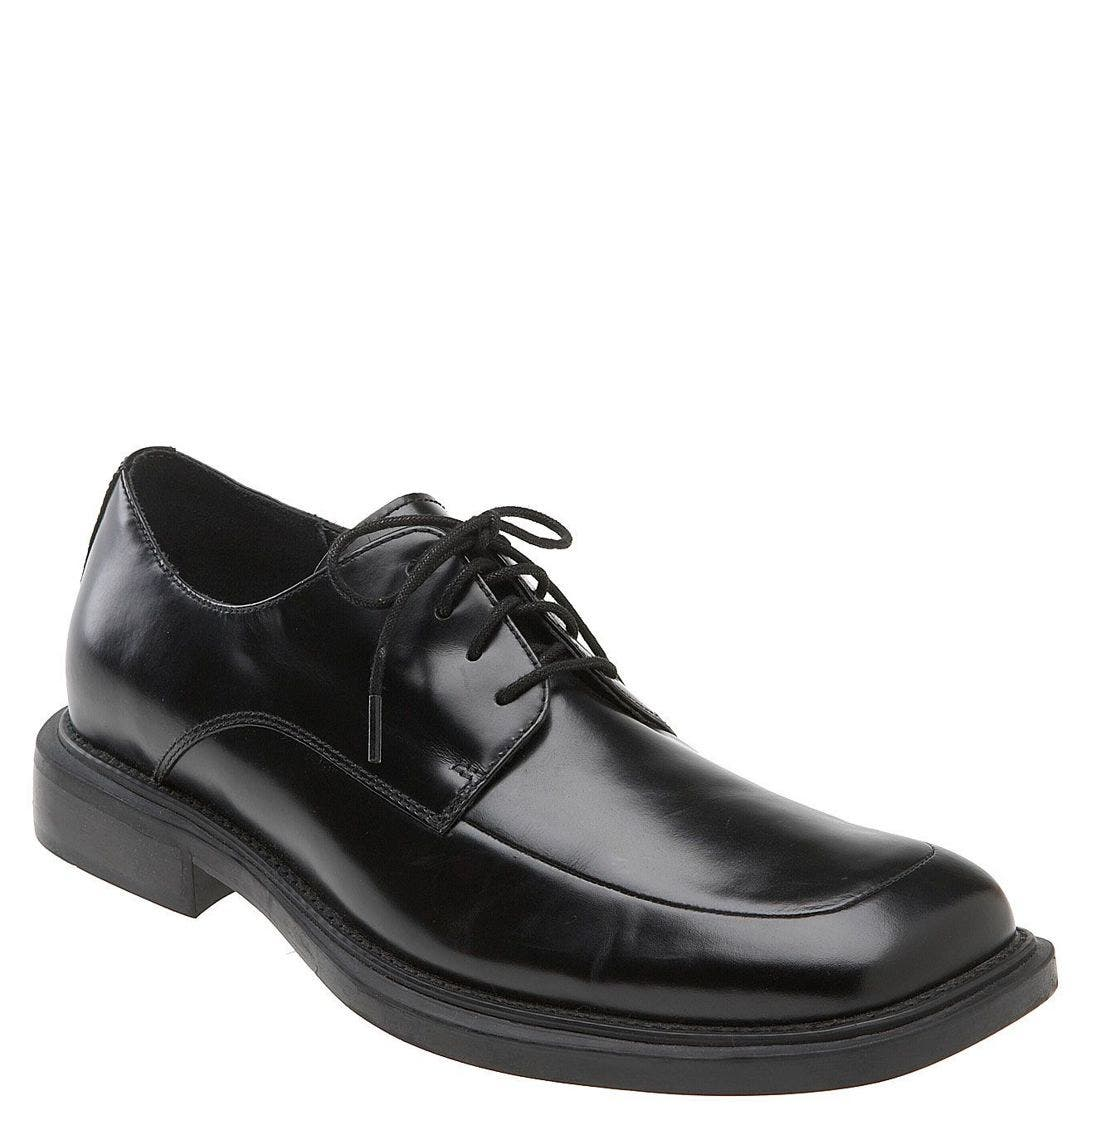 Main Image - Kenneth Cole New York 'Merge' Oxford